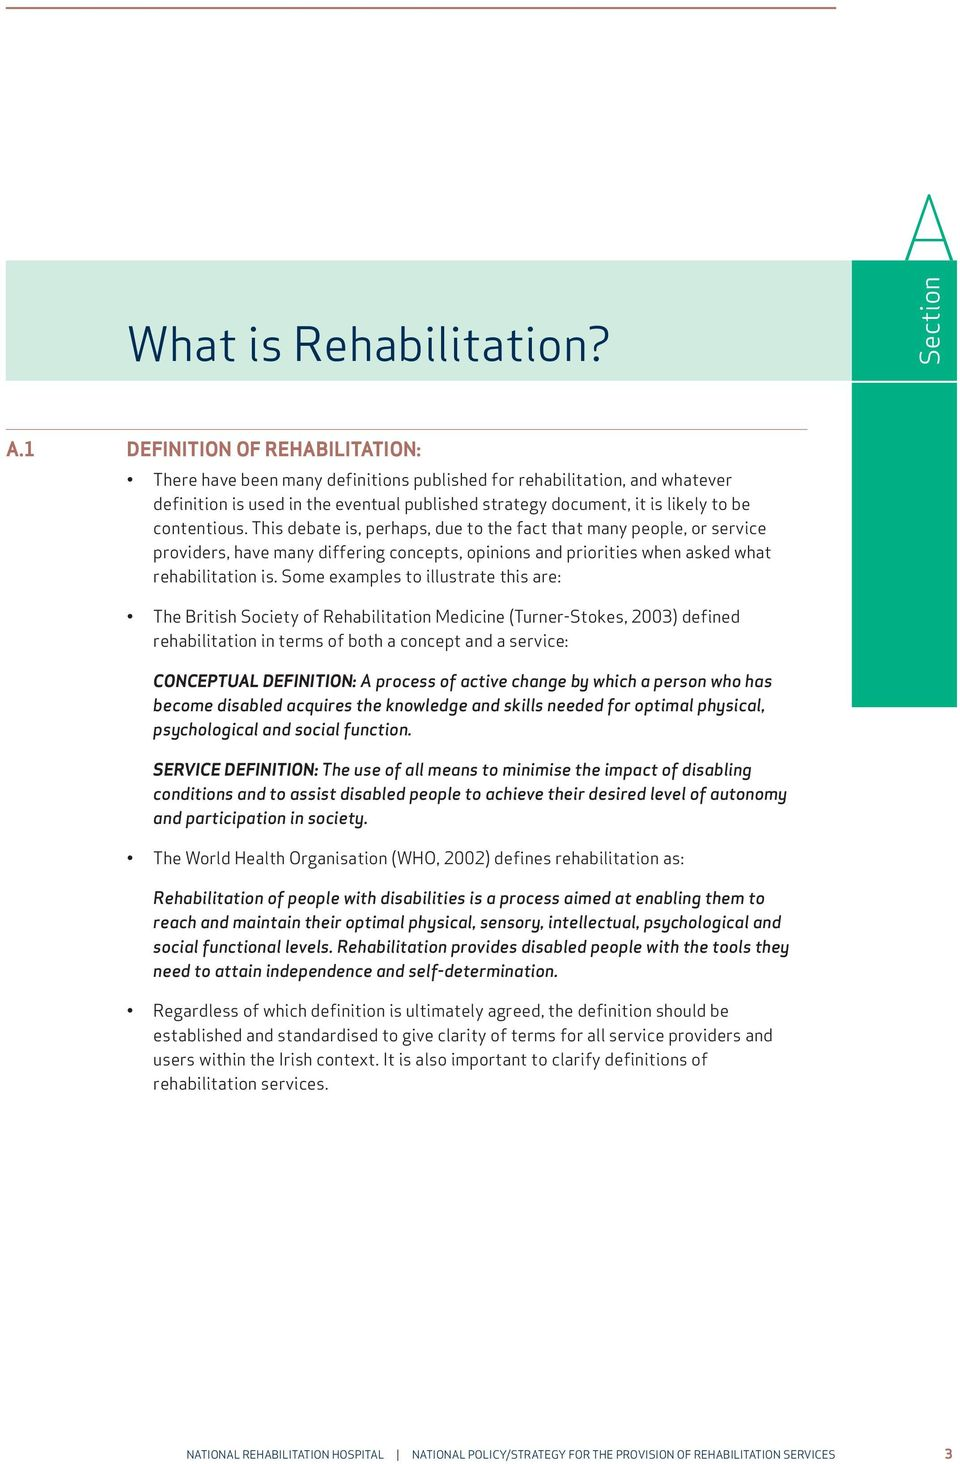 national policy/strategy for the provision of rehabilitation